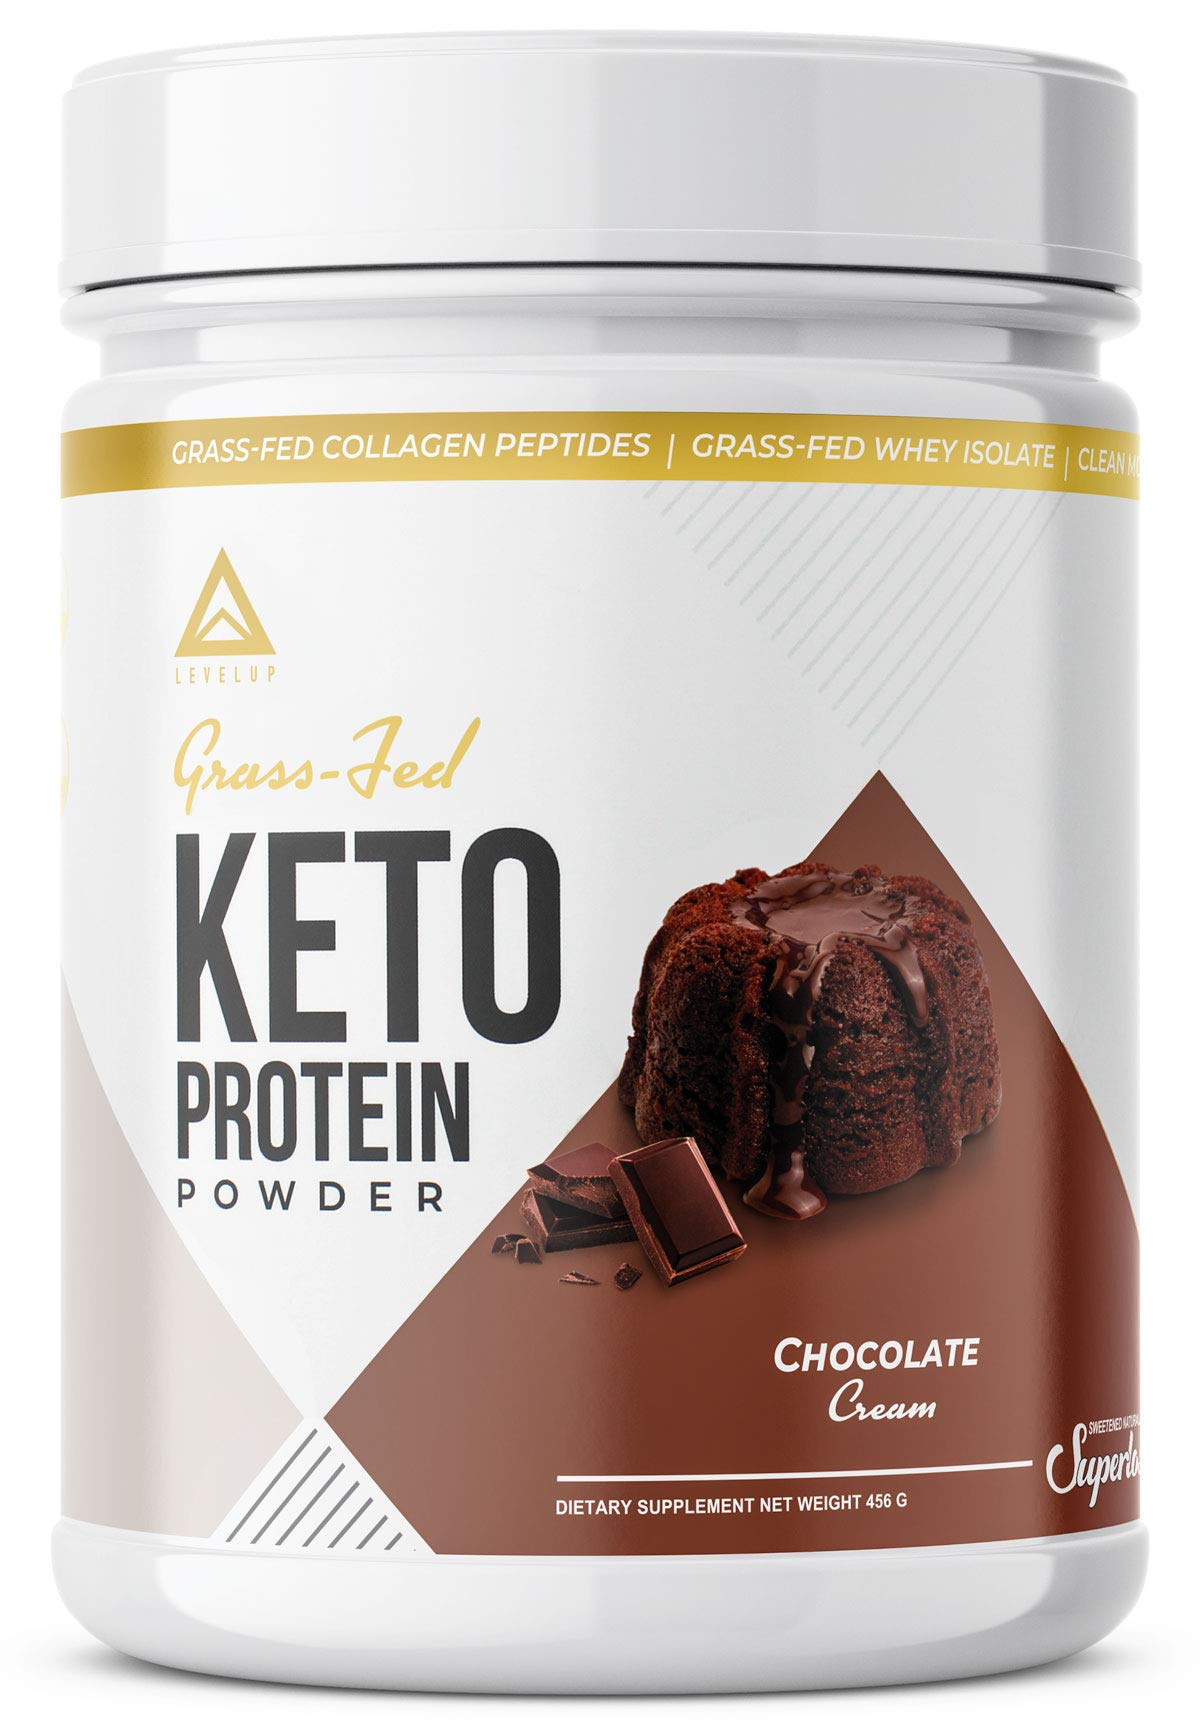 Grass-fed Keto Protein Powder: Collagen Peptides   Pure C8 MCT Oil   Irish Butter   Whey Protein Isolate   Best Ketogenic Protein Shake Supplement   by LevelUp® (Chocolate Cream)